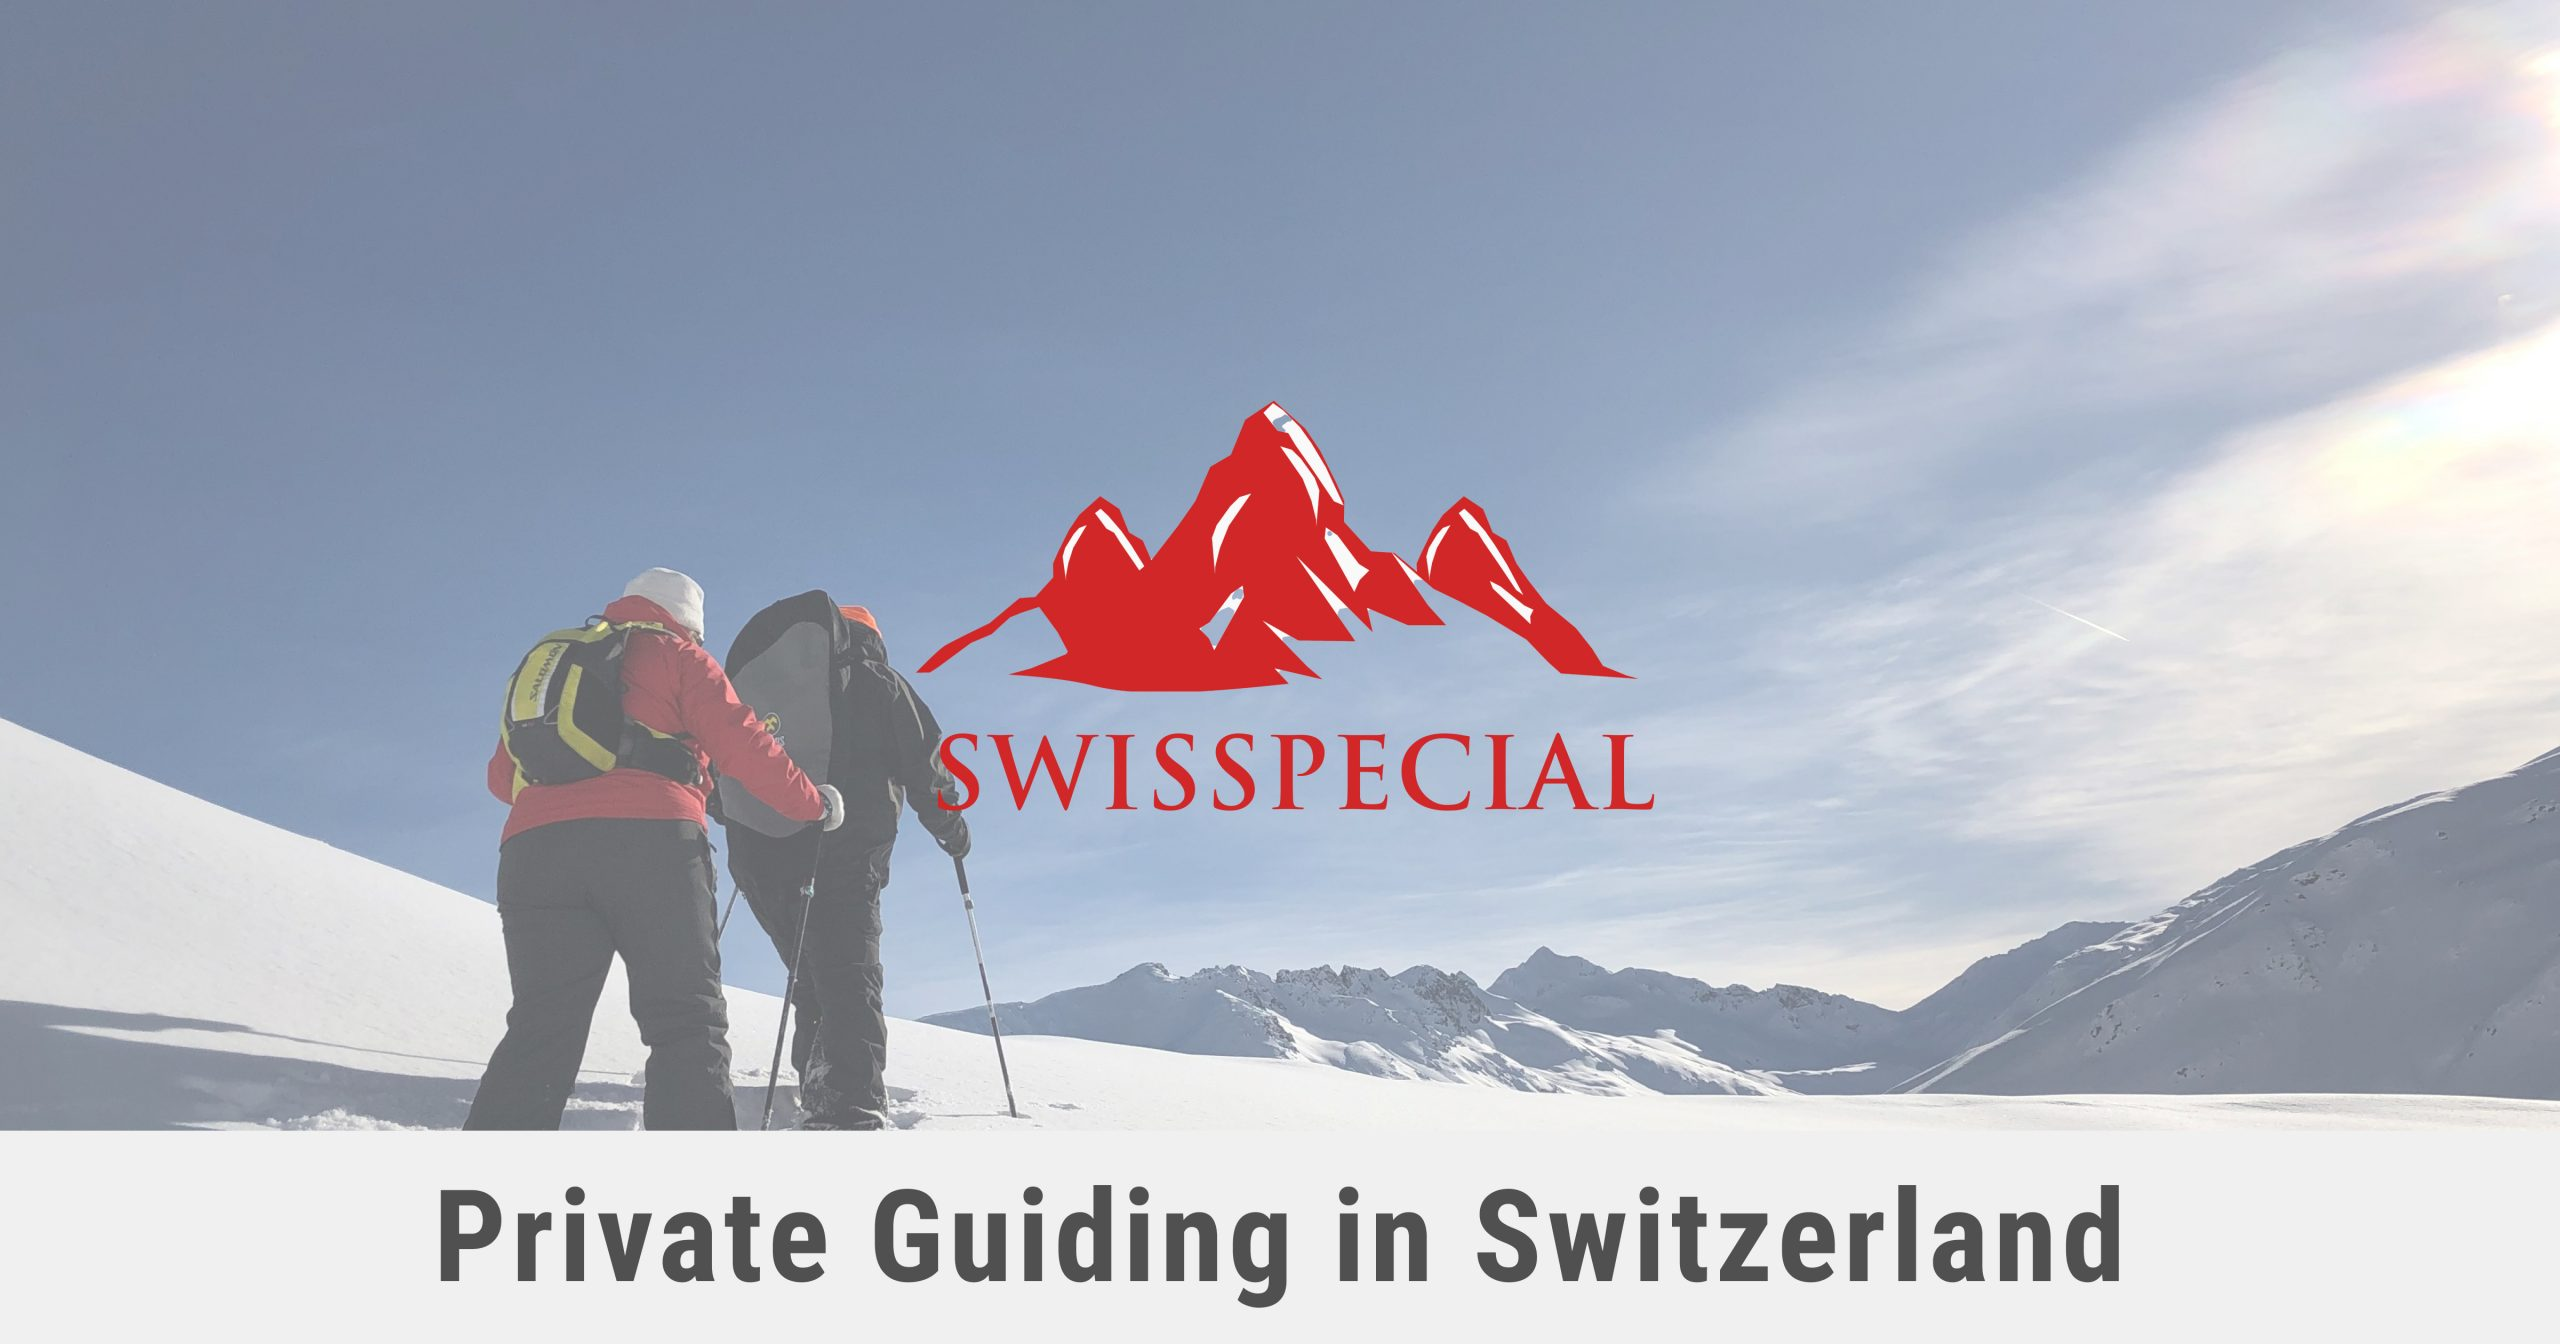 Swisspecial - Private Guiding in Switzerland - Social Meta